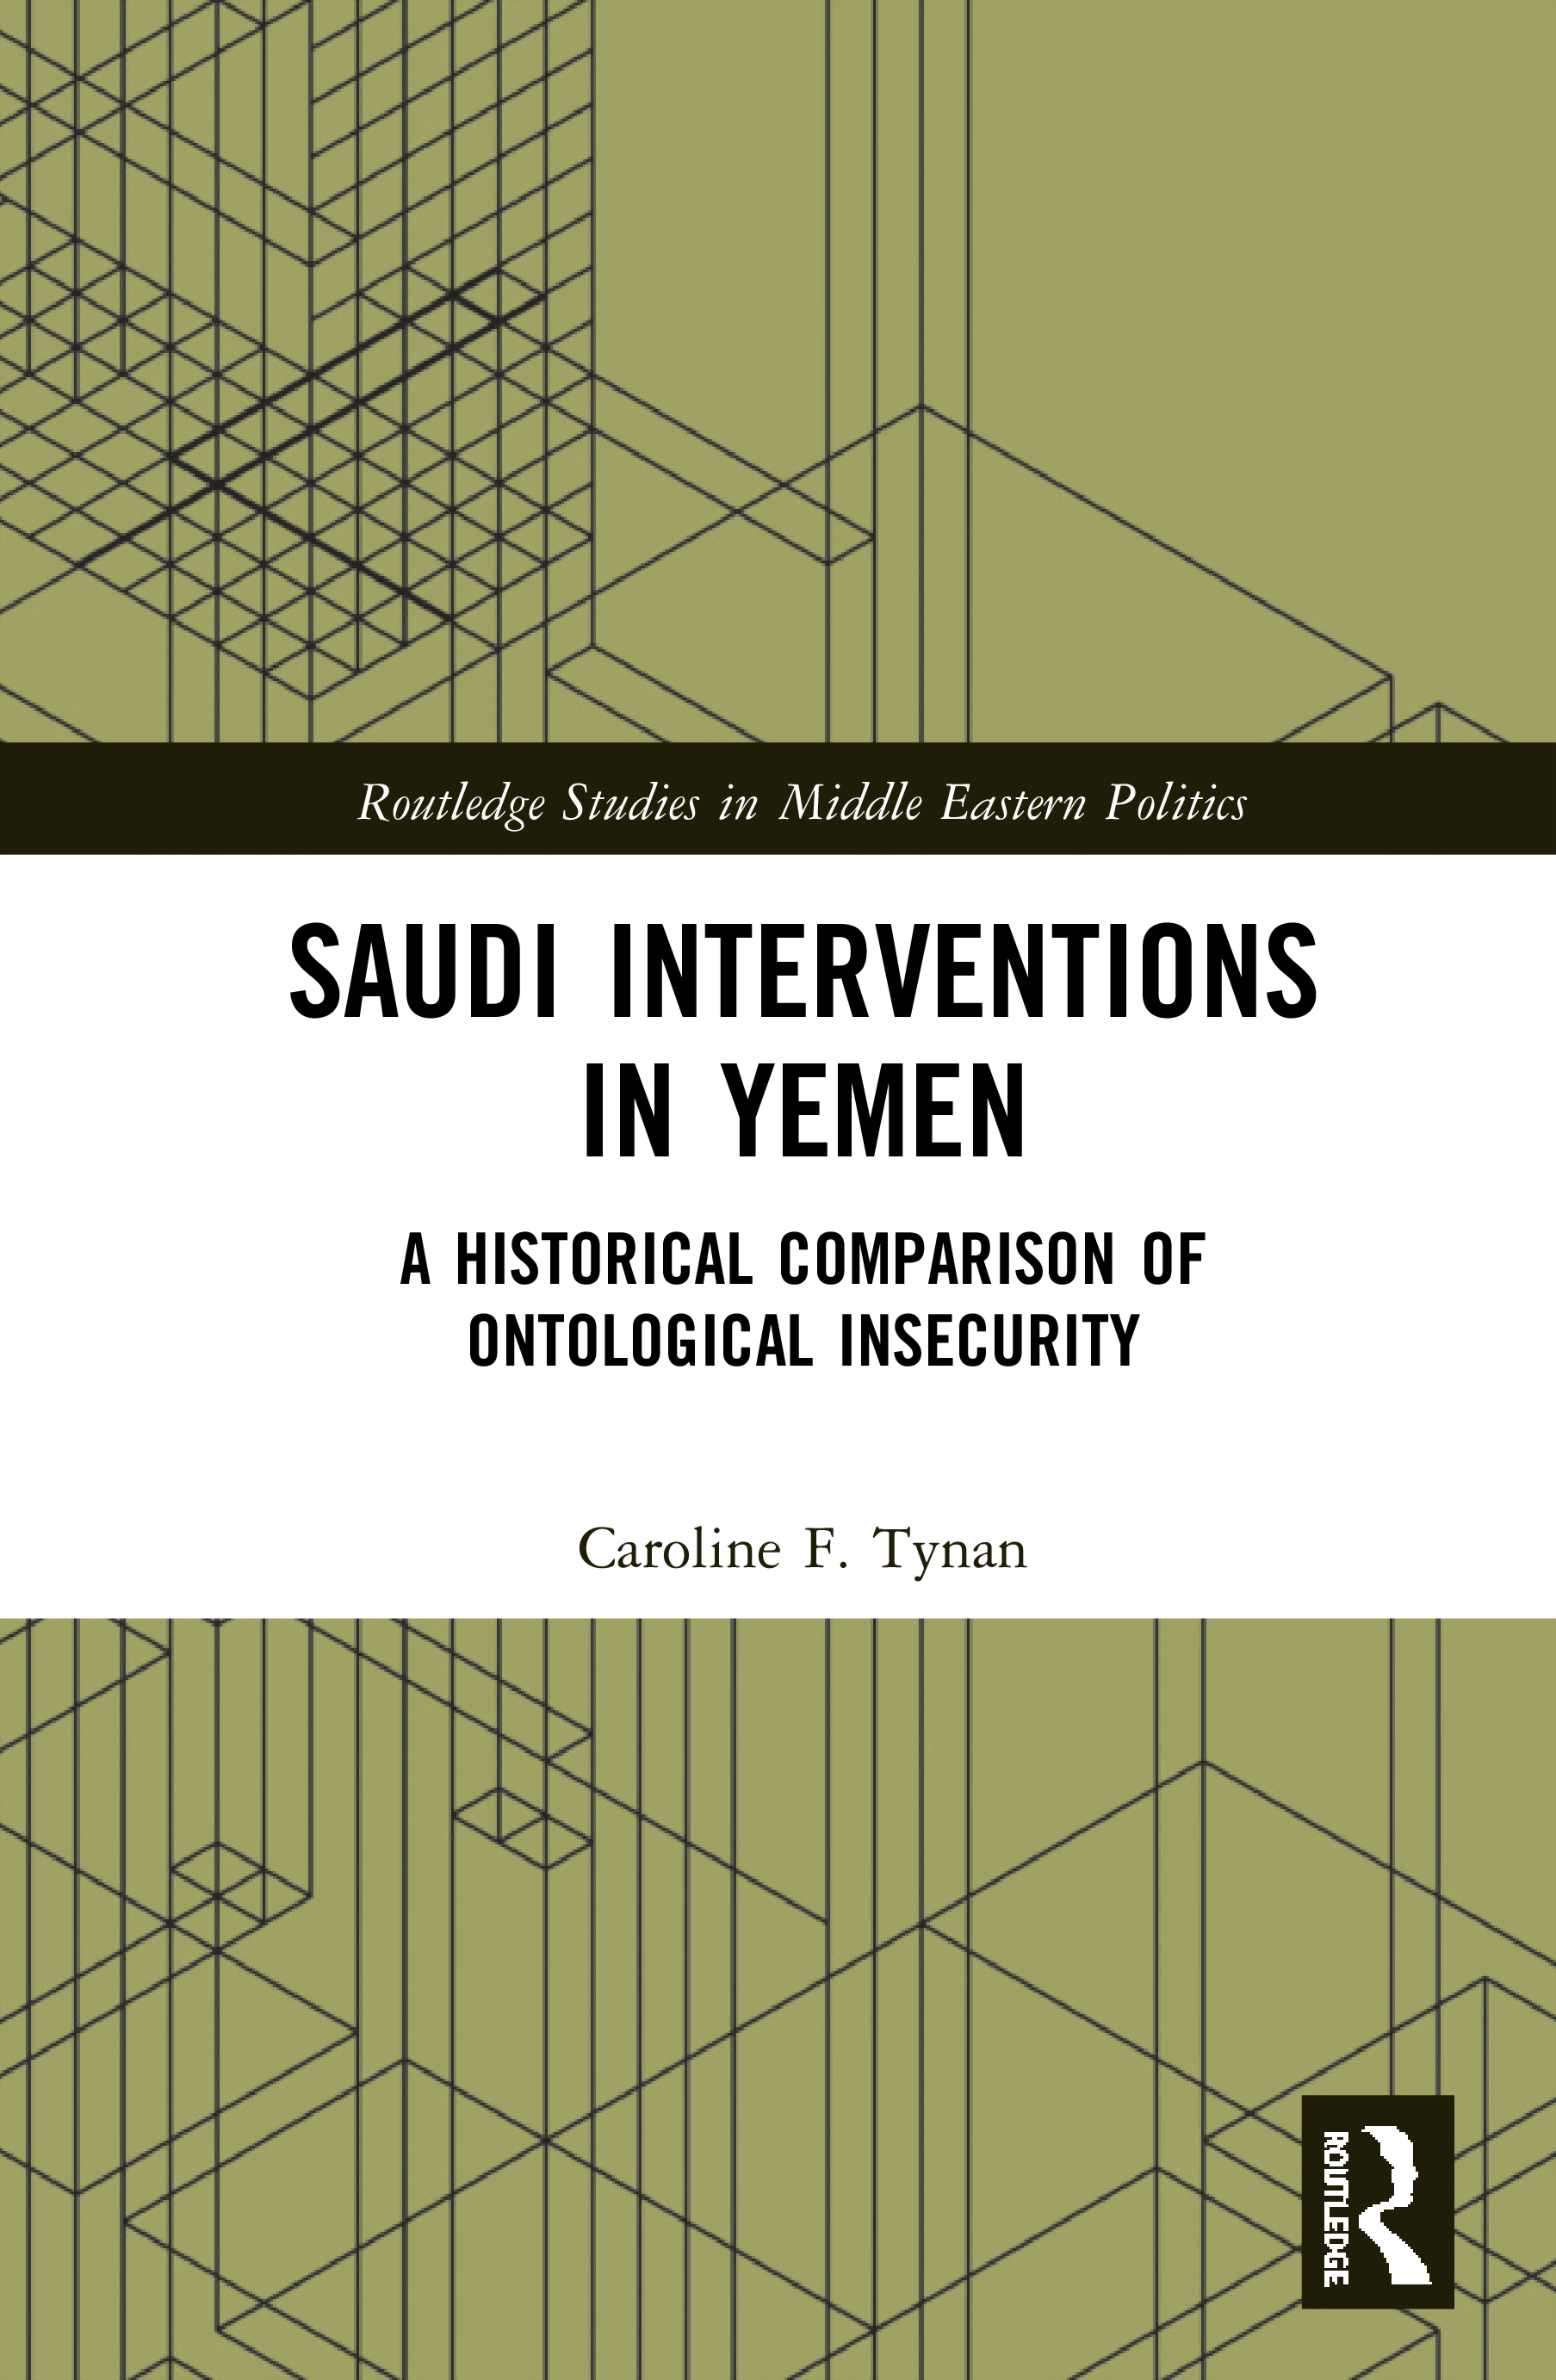 Saudi Interventions in Yemen: A Historical Comparison of Ontological Insecurity book cover